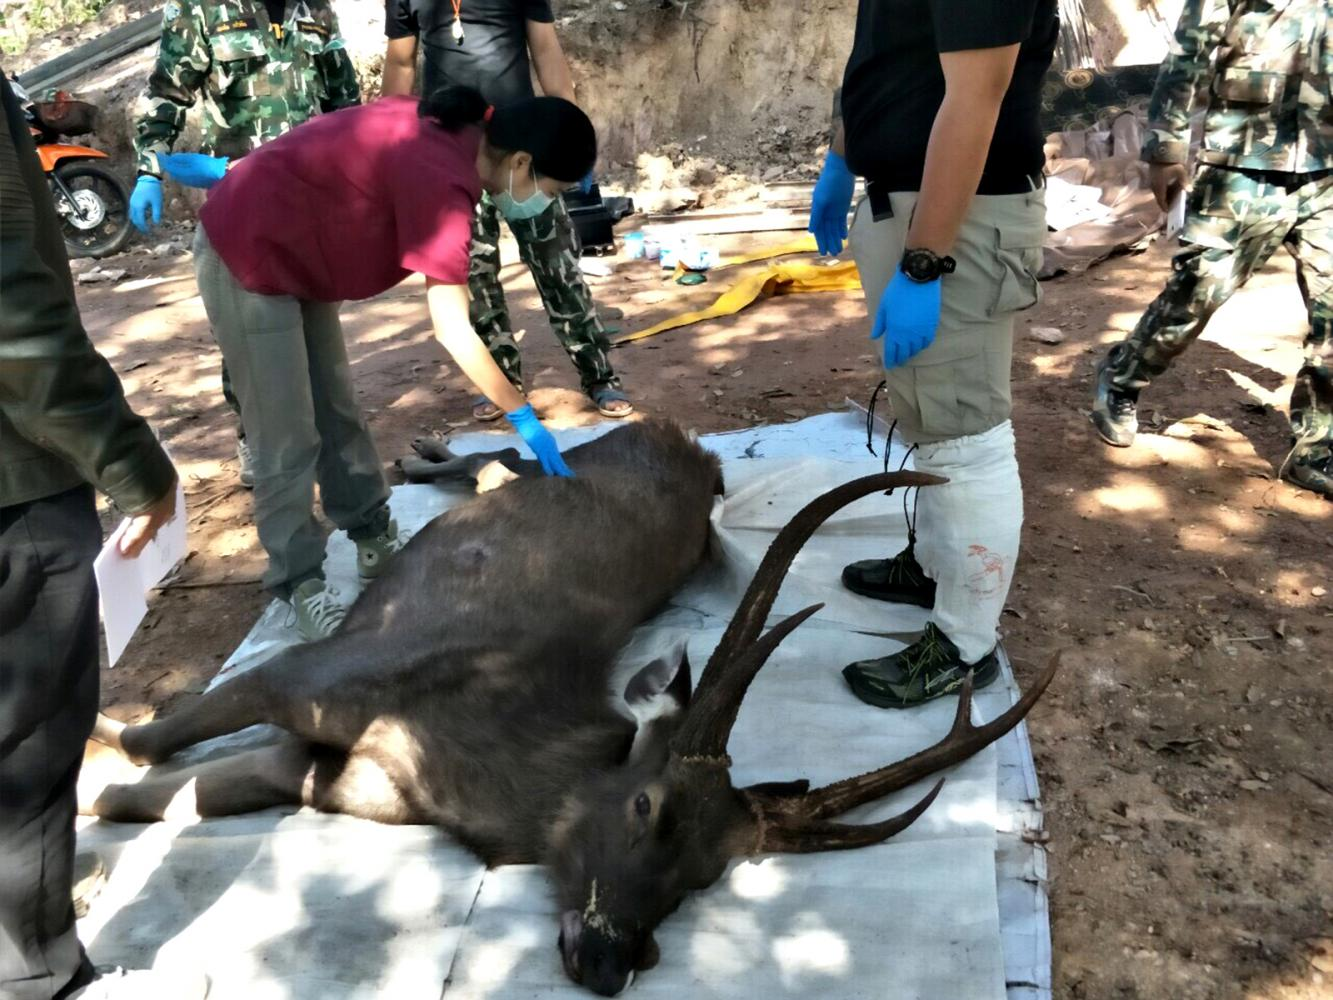 Plastic rubbish found in dead deer stomach